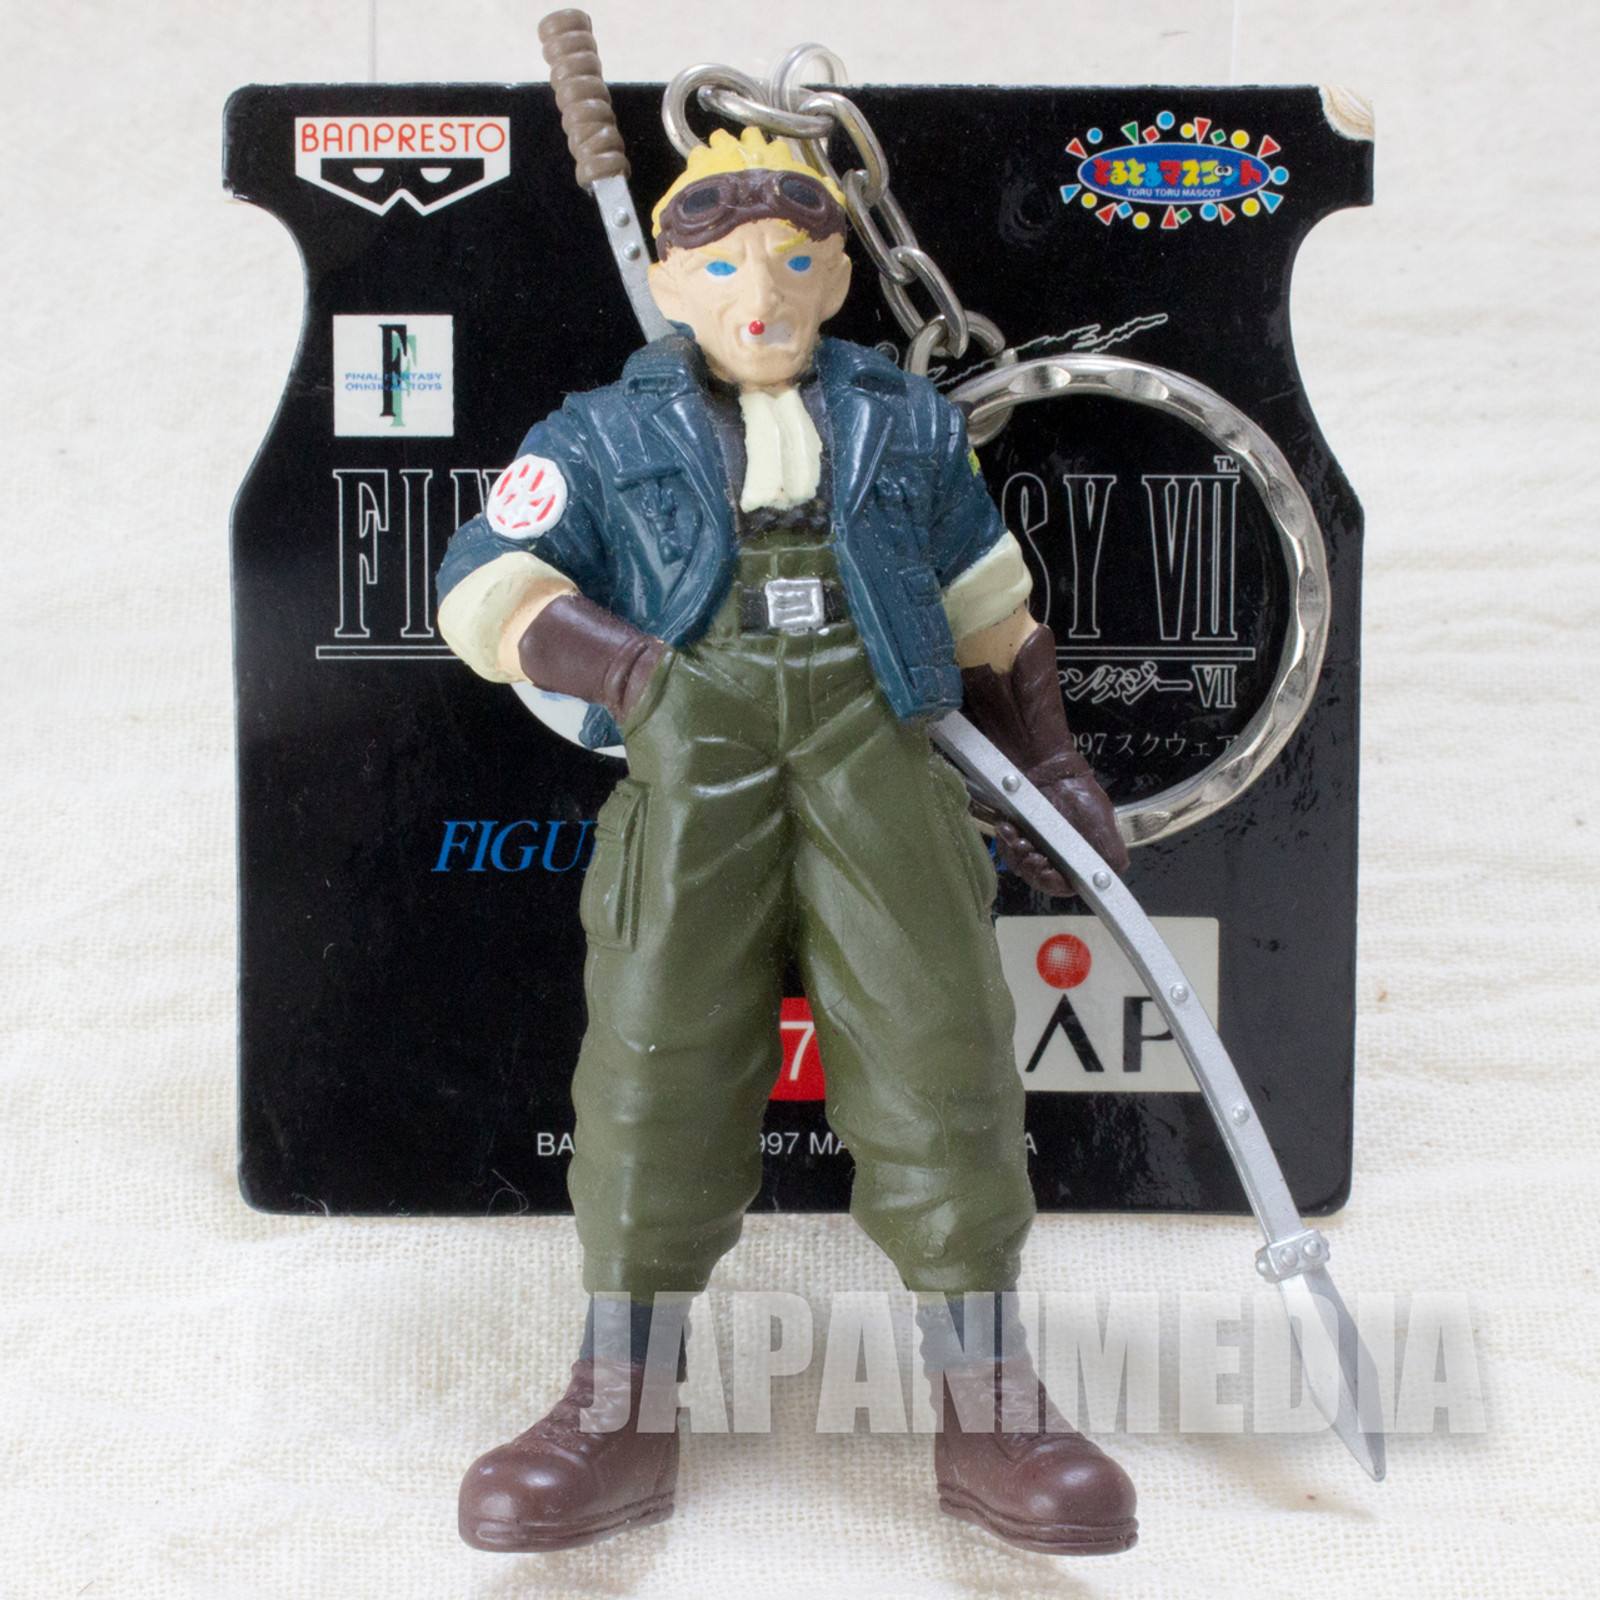 Final Fantasy VII Cid Figure Key Chain Banpresto JAPAN SQUARE ENIX